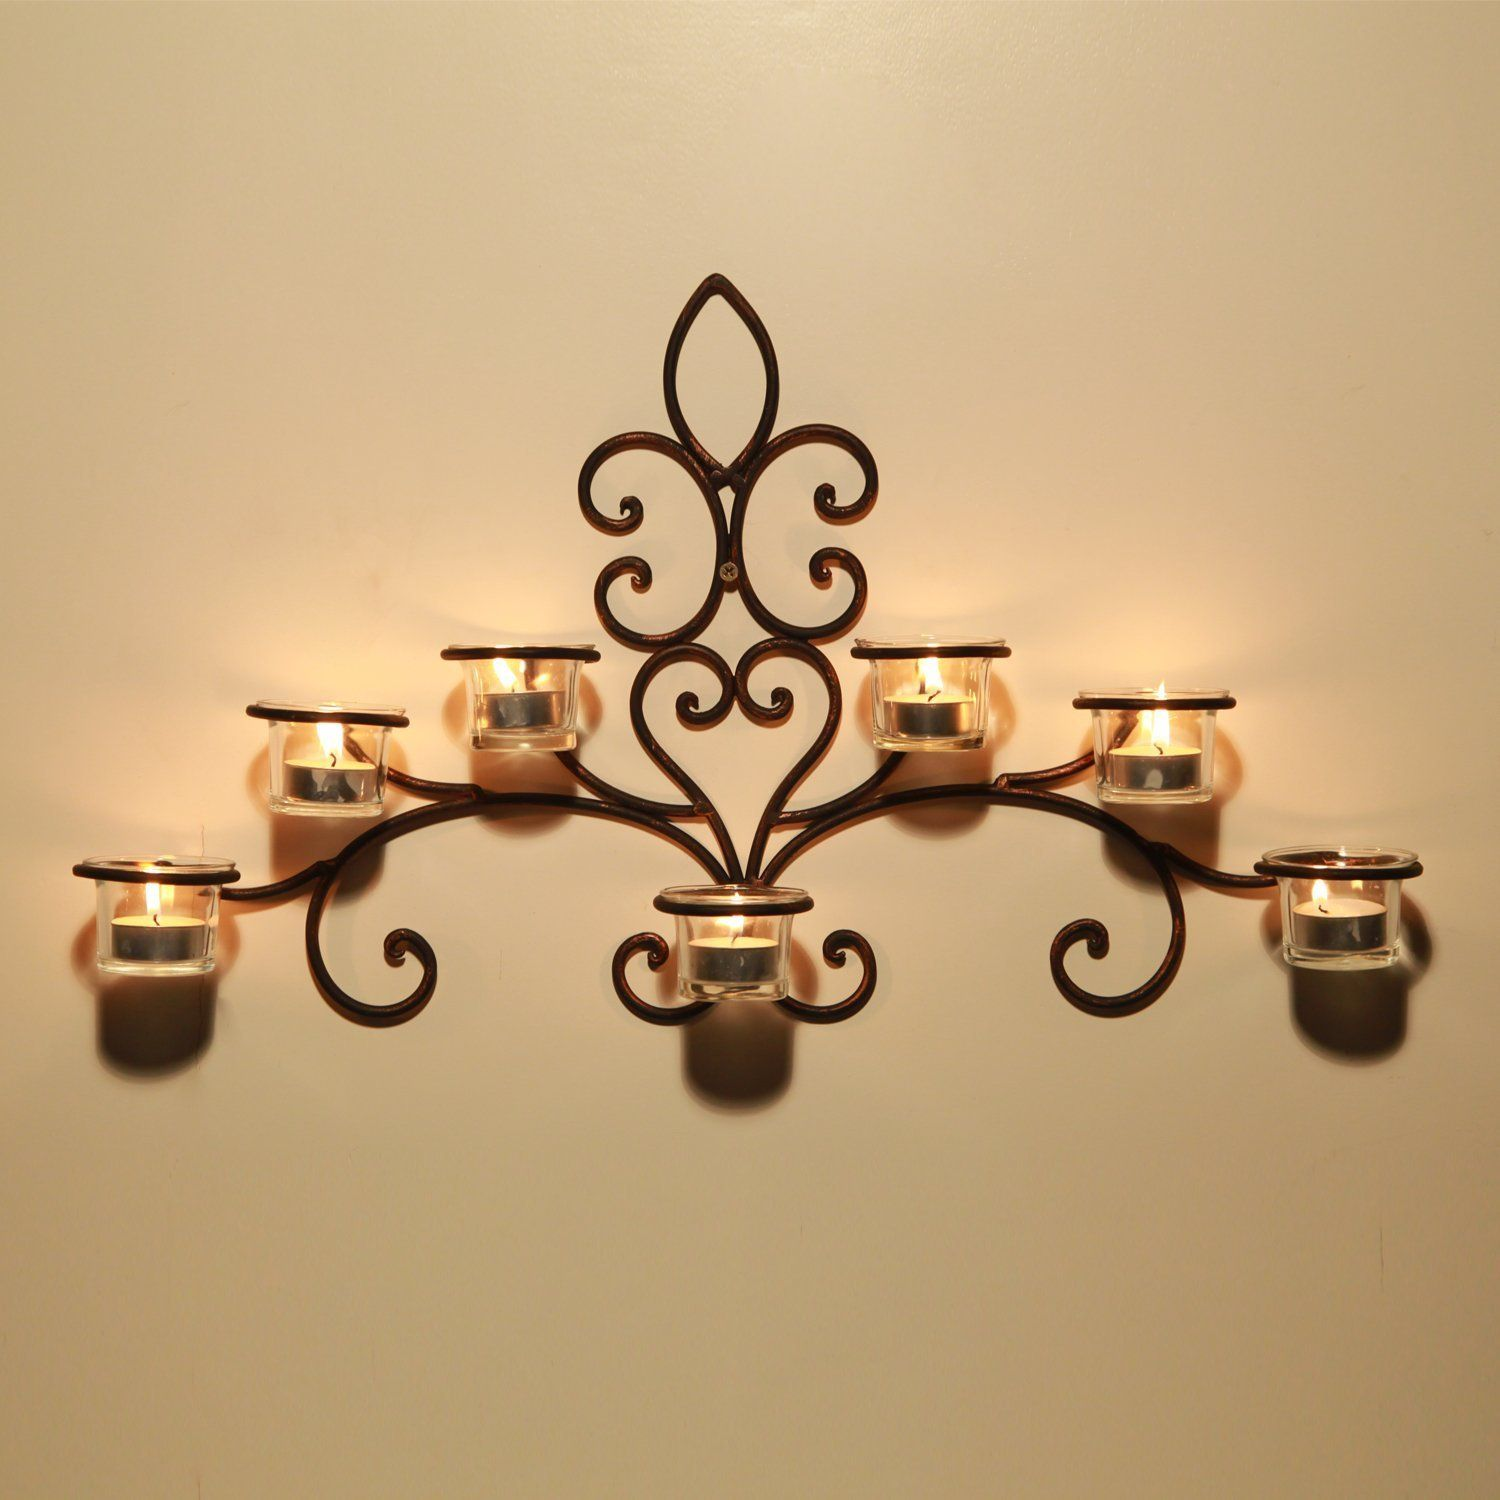 Iron Wall Sconce Candle Holder Products Pinterest Candle Wall